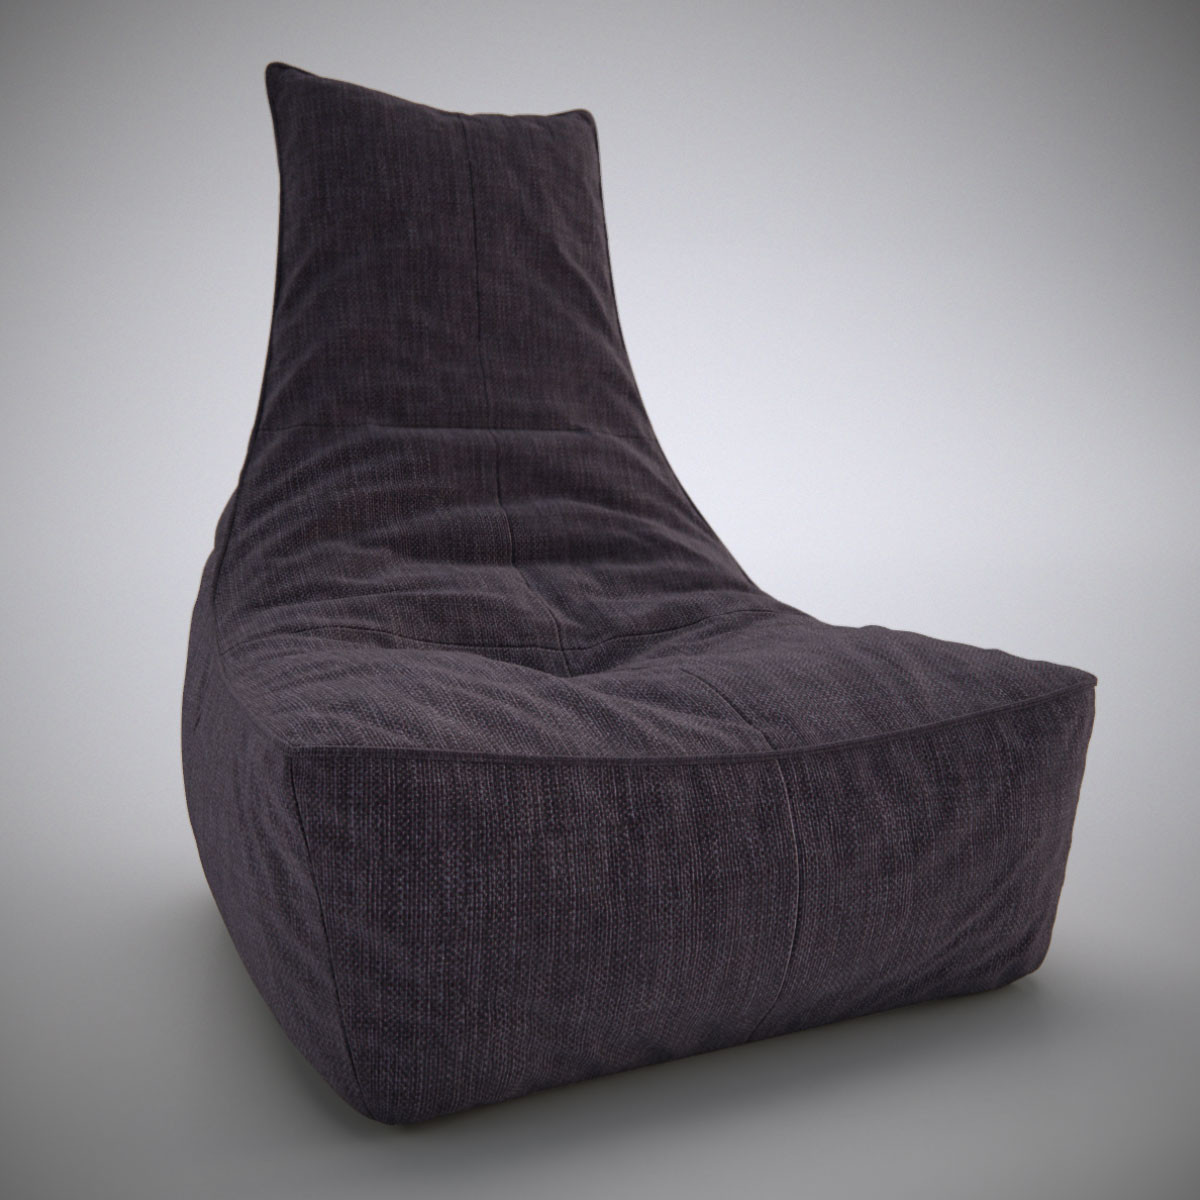 'The Rock' Lounge Chair